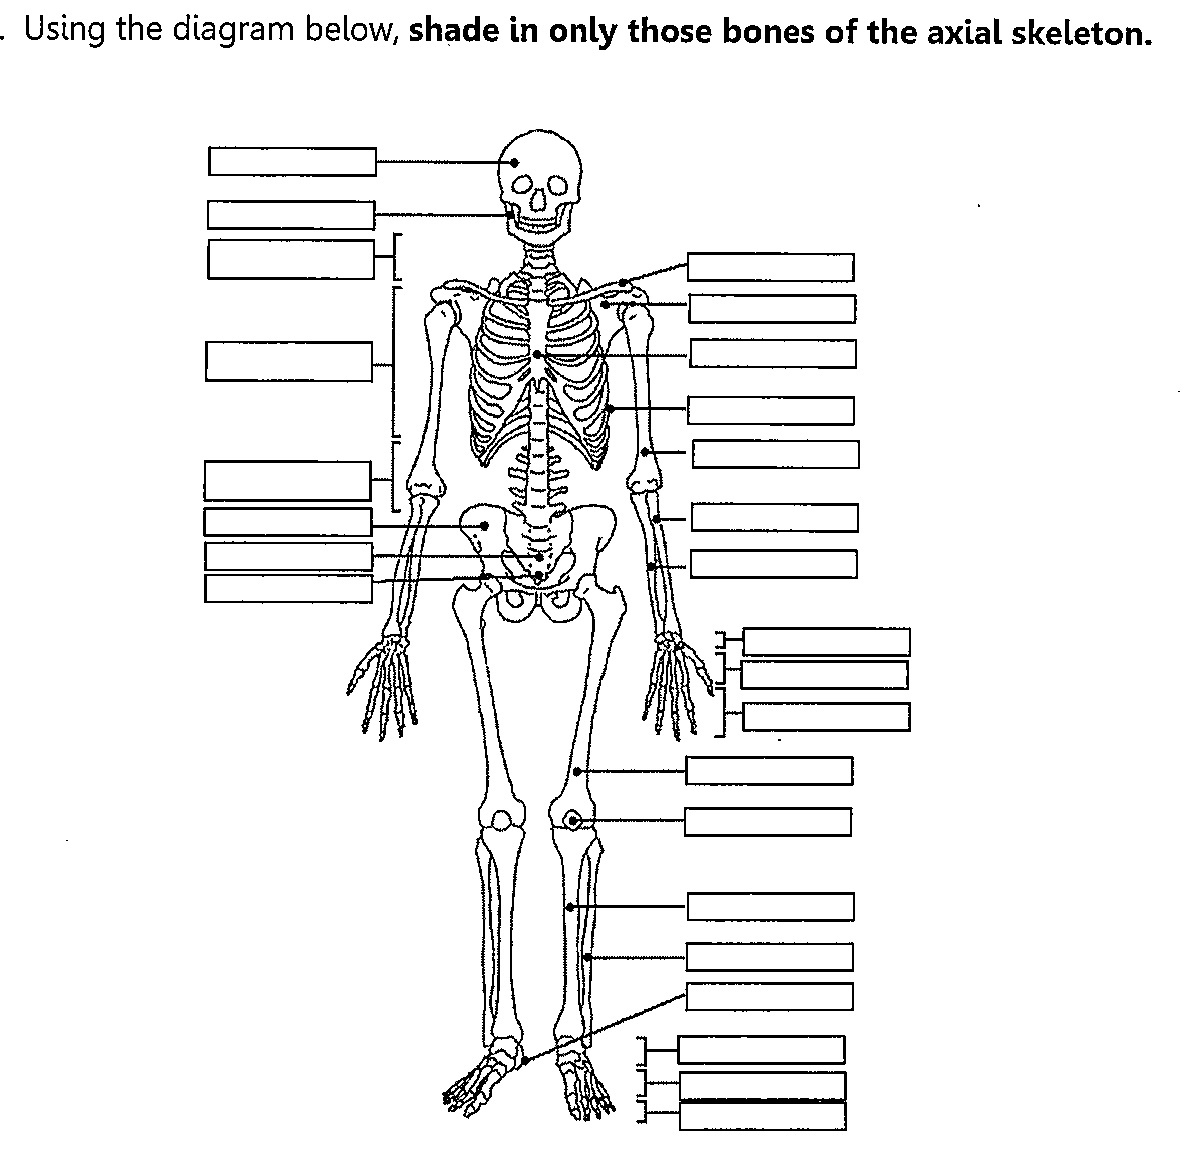 axial skeleton worksheet fill in the blank yahoo image. Black Bedroom Furniture Sets. Home Design Ideas